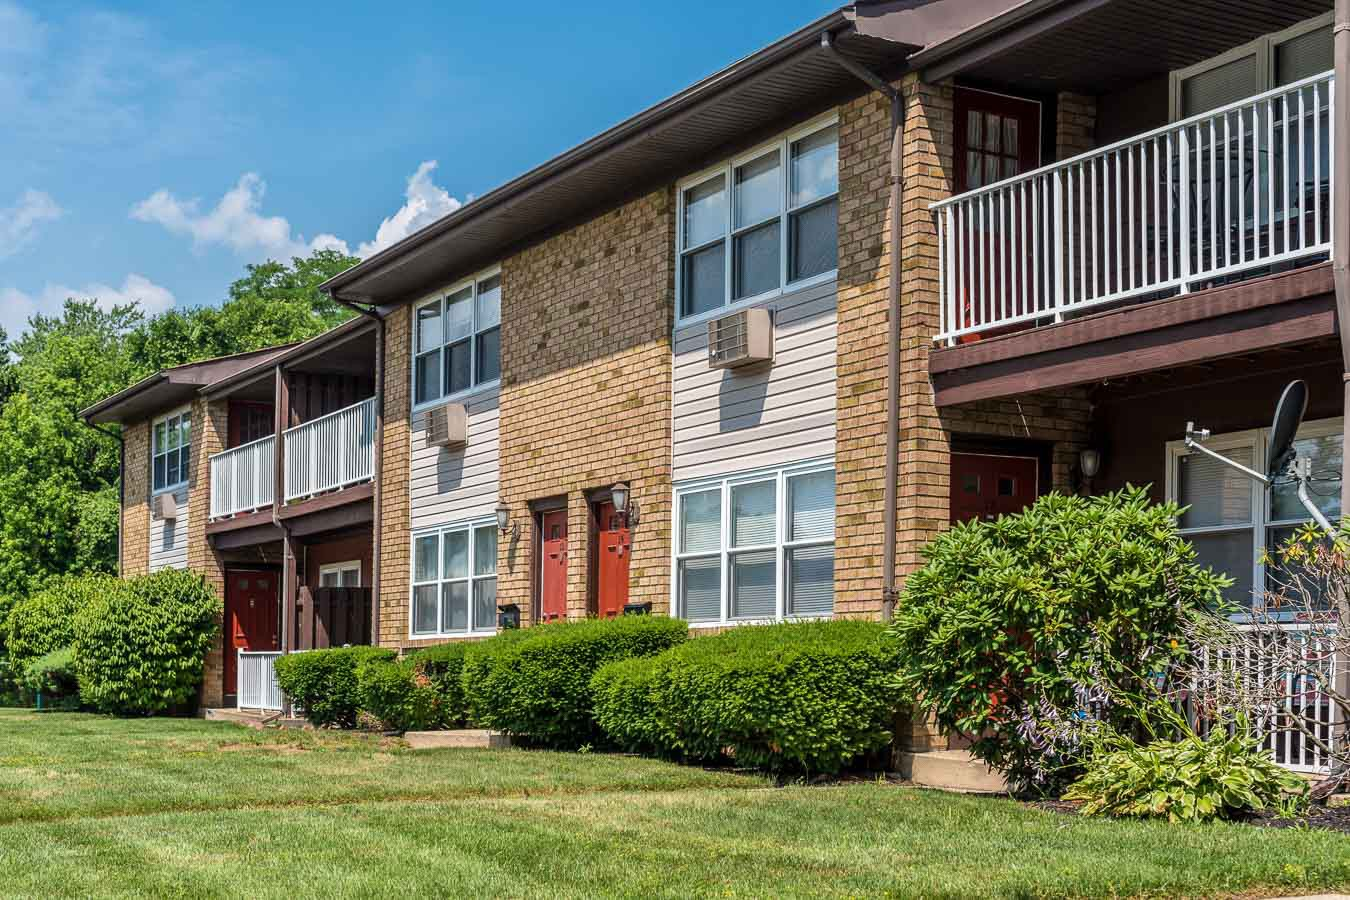 Apartments Near Rider Royal Crest Apartments for Rider University Students in Lawrenceville, NJ